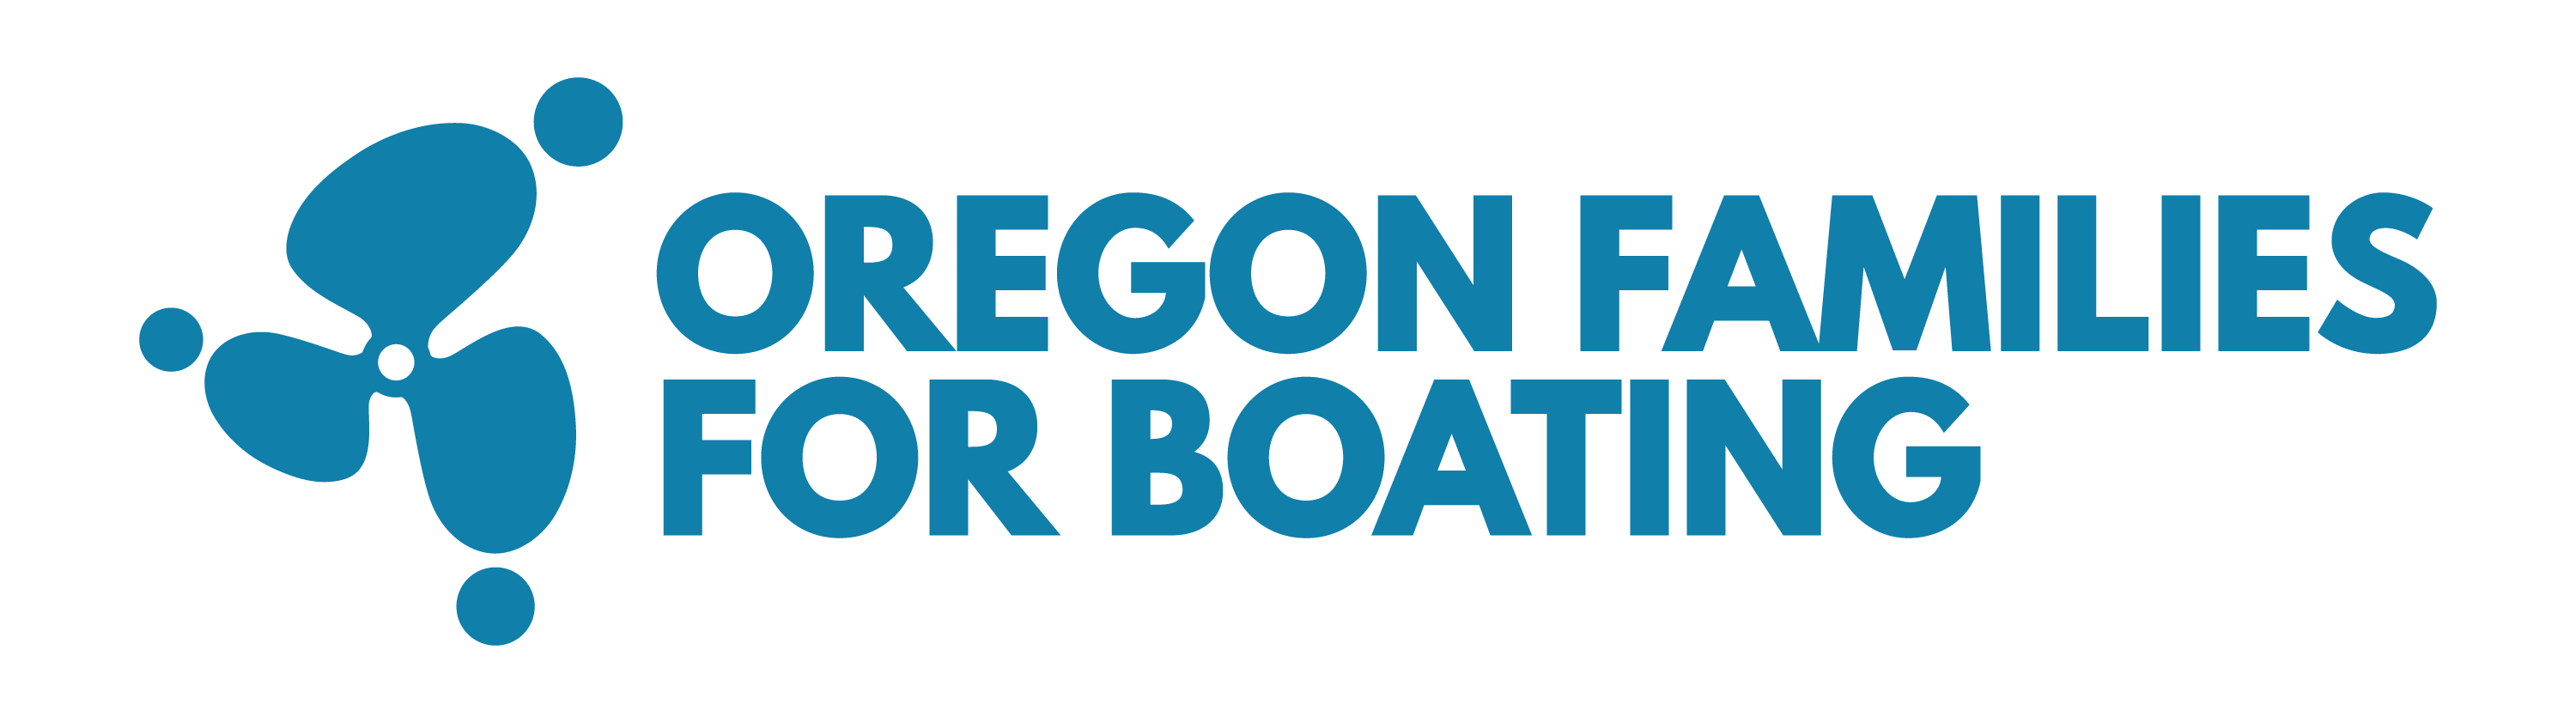 Oregon Families for Boating